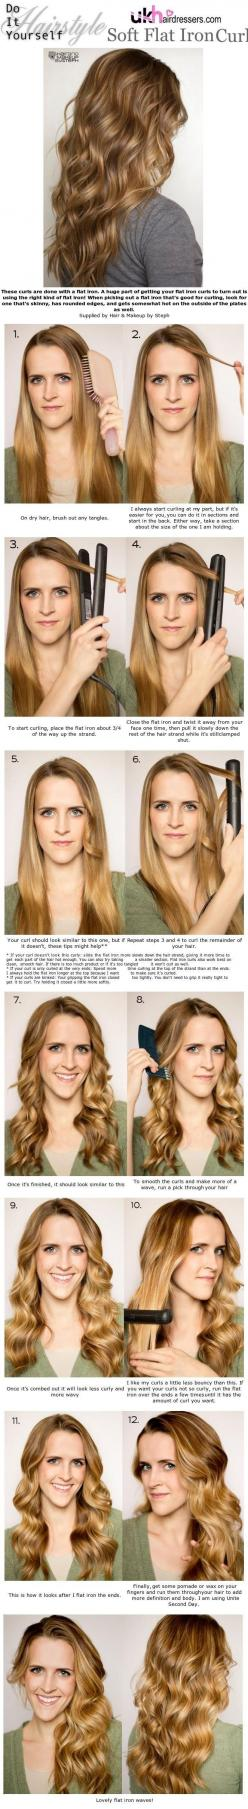 Flat Iron Curls 6 Ways to curl your hair: Flat Irons, Curling Hair, Hairstyles, Curls Ukhairdressers, Flat Iron Curls, Hair Styles, Flatiron